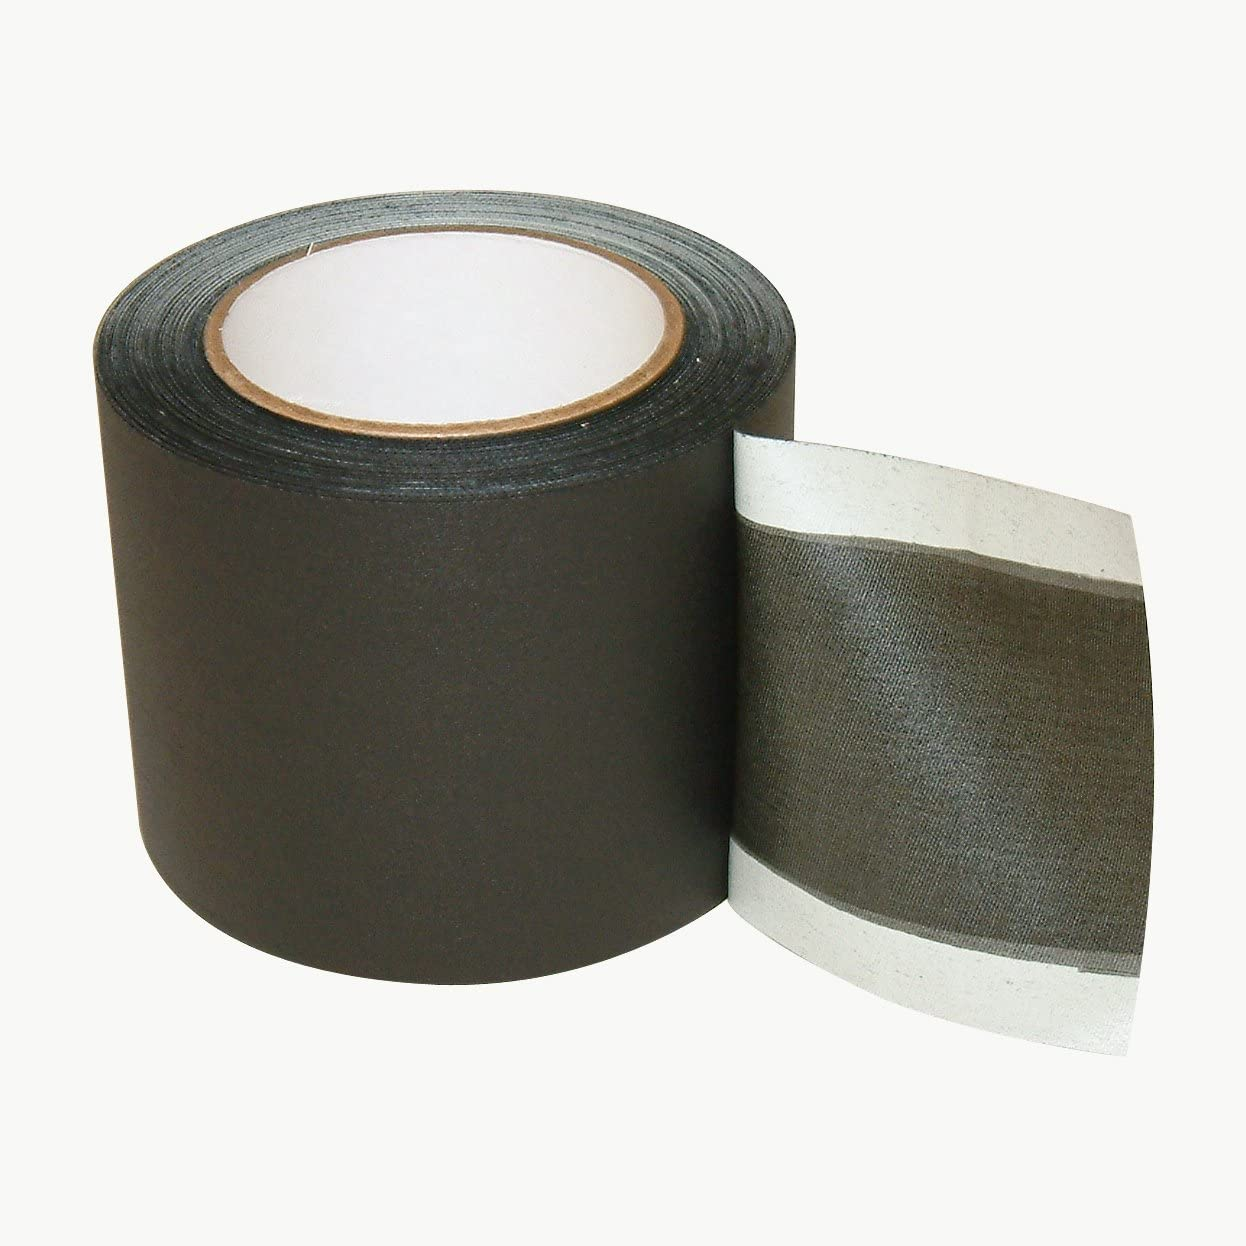 Black x 30 ft. 4 in JVCC Wire-Line Cable Cover Tape